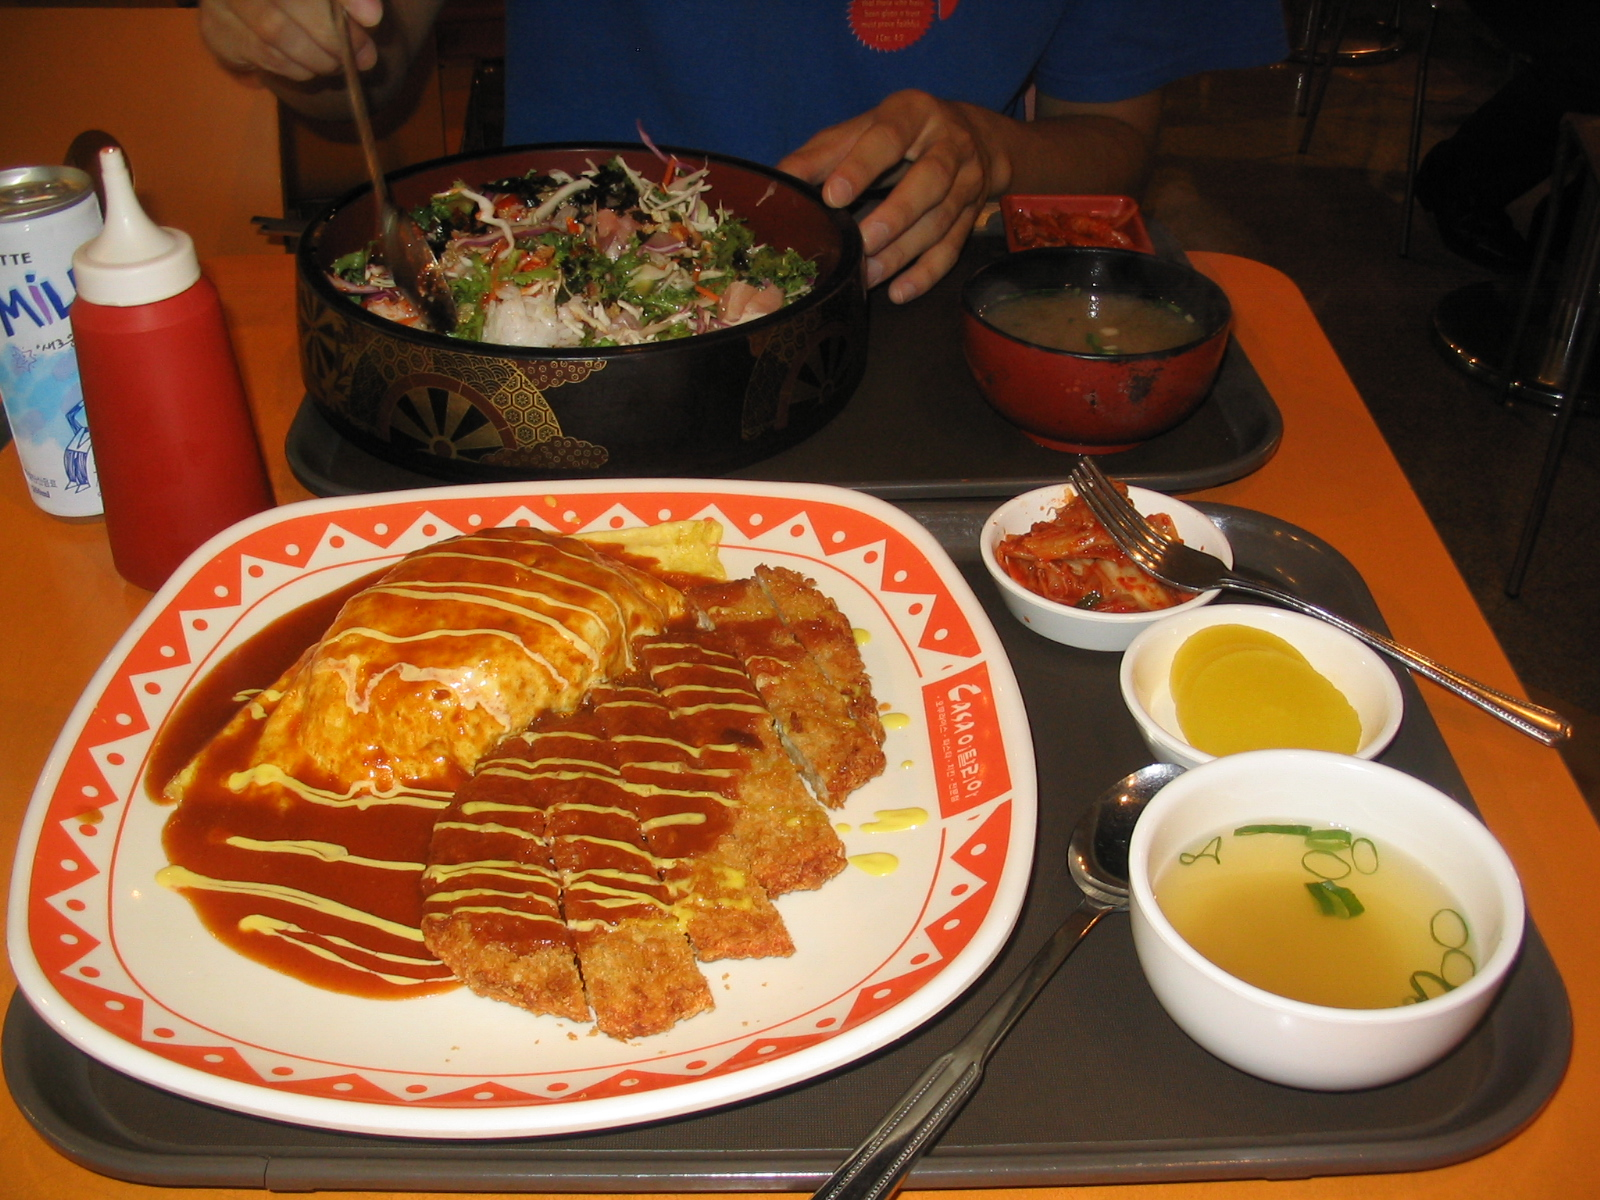 "Seoul, Korea :: Here is a meal from one of my favorite places in Seoul at the World Cup Mall. It's also Tonkatsu, or in Korea Dunkasu, with a tomato sauce on top. The egg is an omellete filled with rice (quite popular in Korea) and of course there is kimchi. My friend was eating some sort of sushi salad. The drink ""Milkis"" is a carbonated milk drink, actually really good."